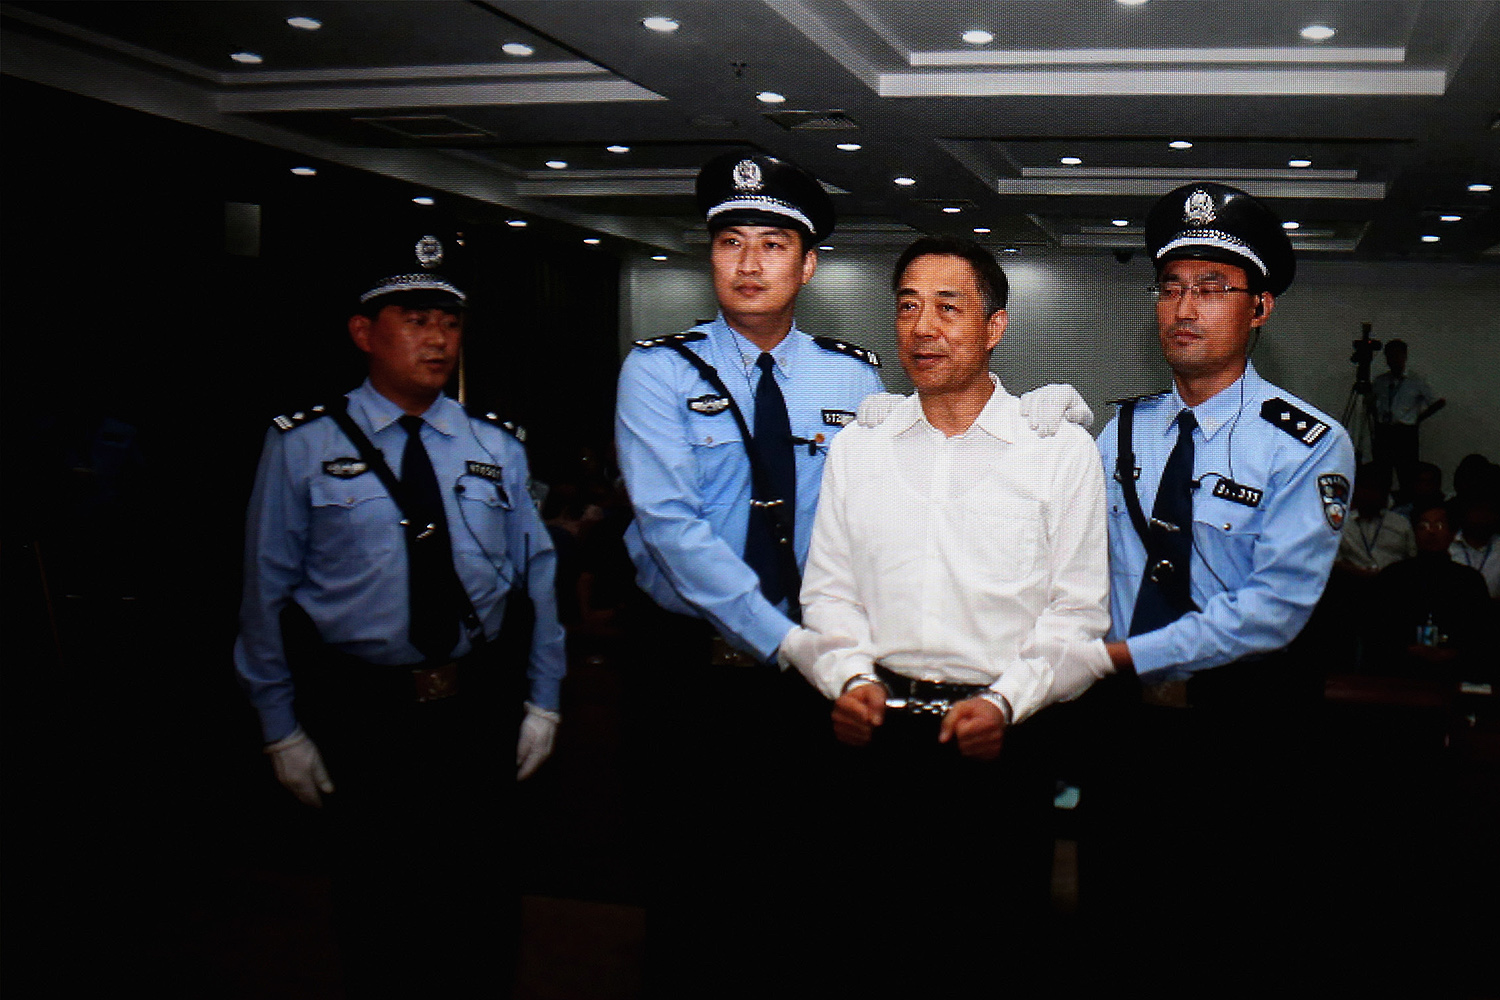 A screen shows the sentencing of Bo Xilai in Beijing on Sept. 2, 2013. The former Chinese politician was sentenced to life imprisonment for bribery, embezzlement, and abuse of power.